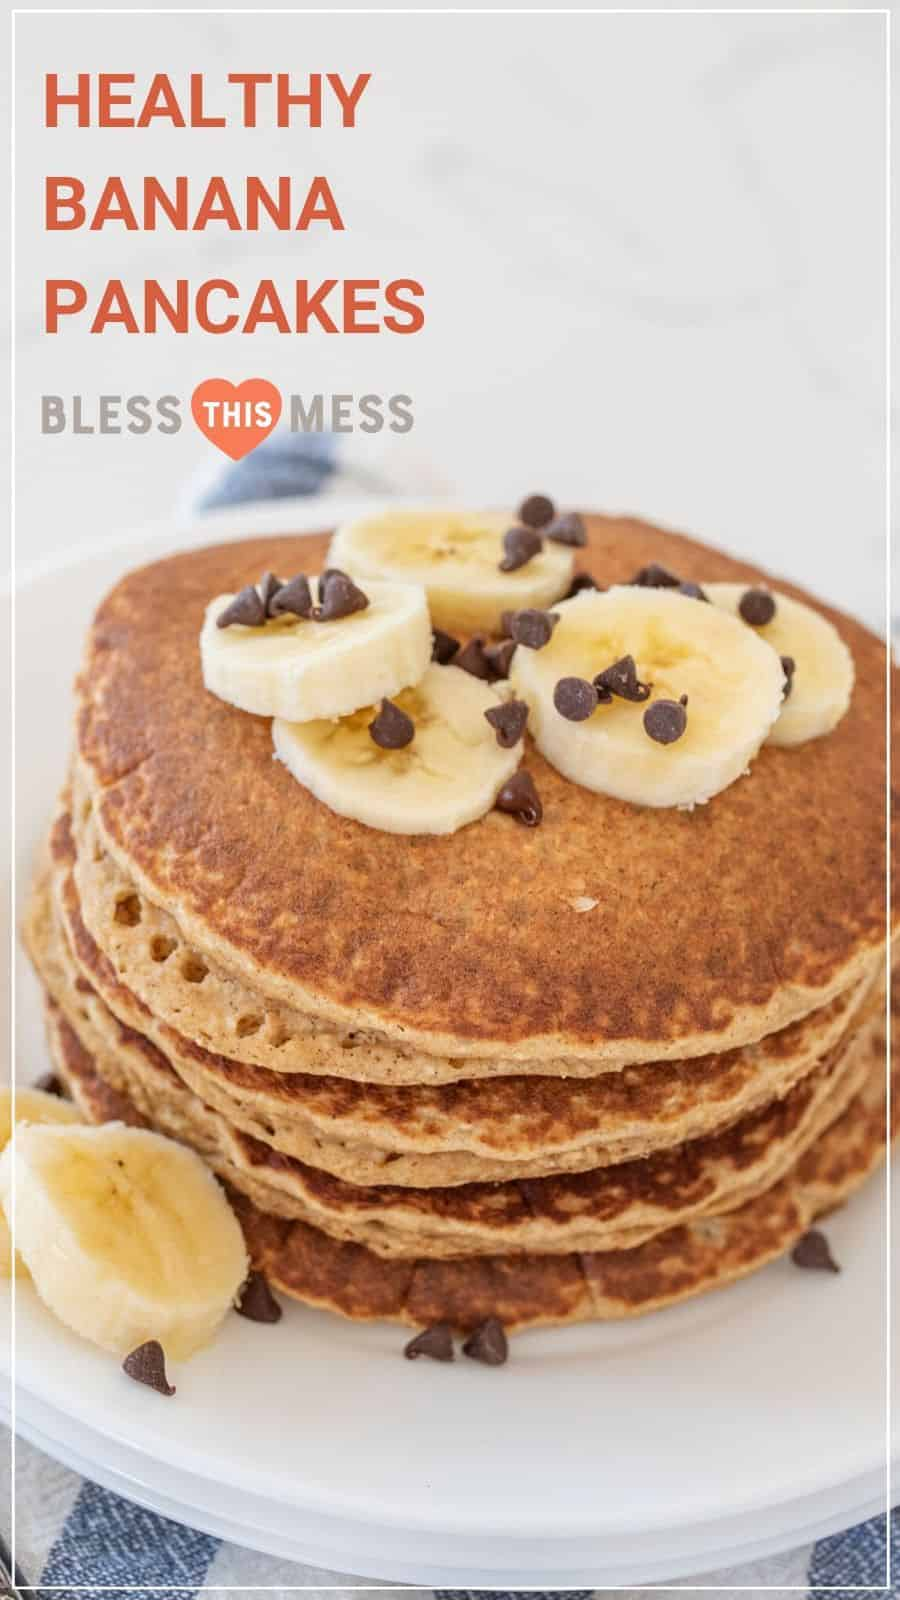 stack of healthy banana pancakes topped with banana slices and chocolate chips